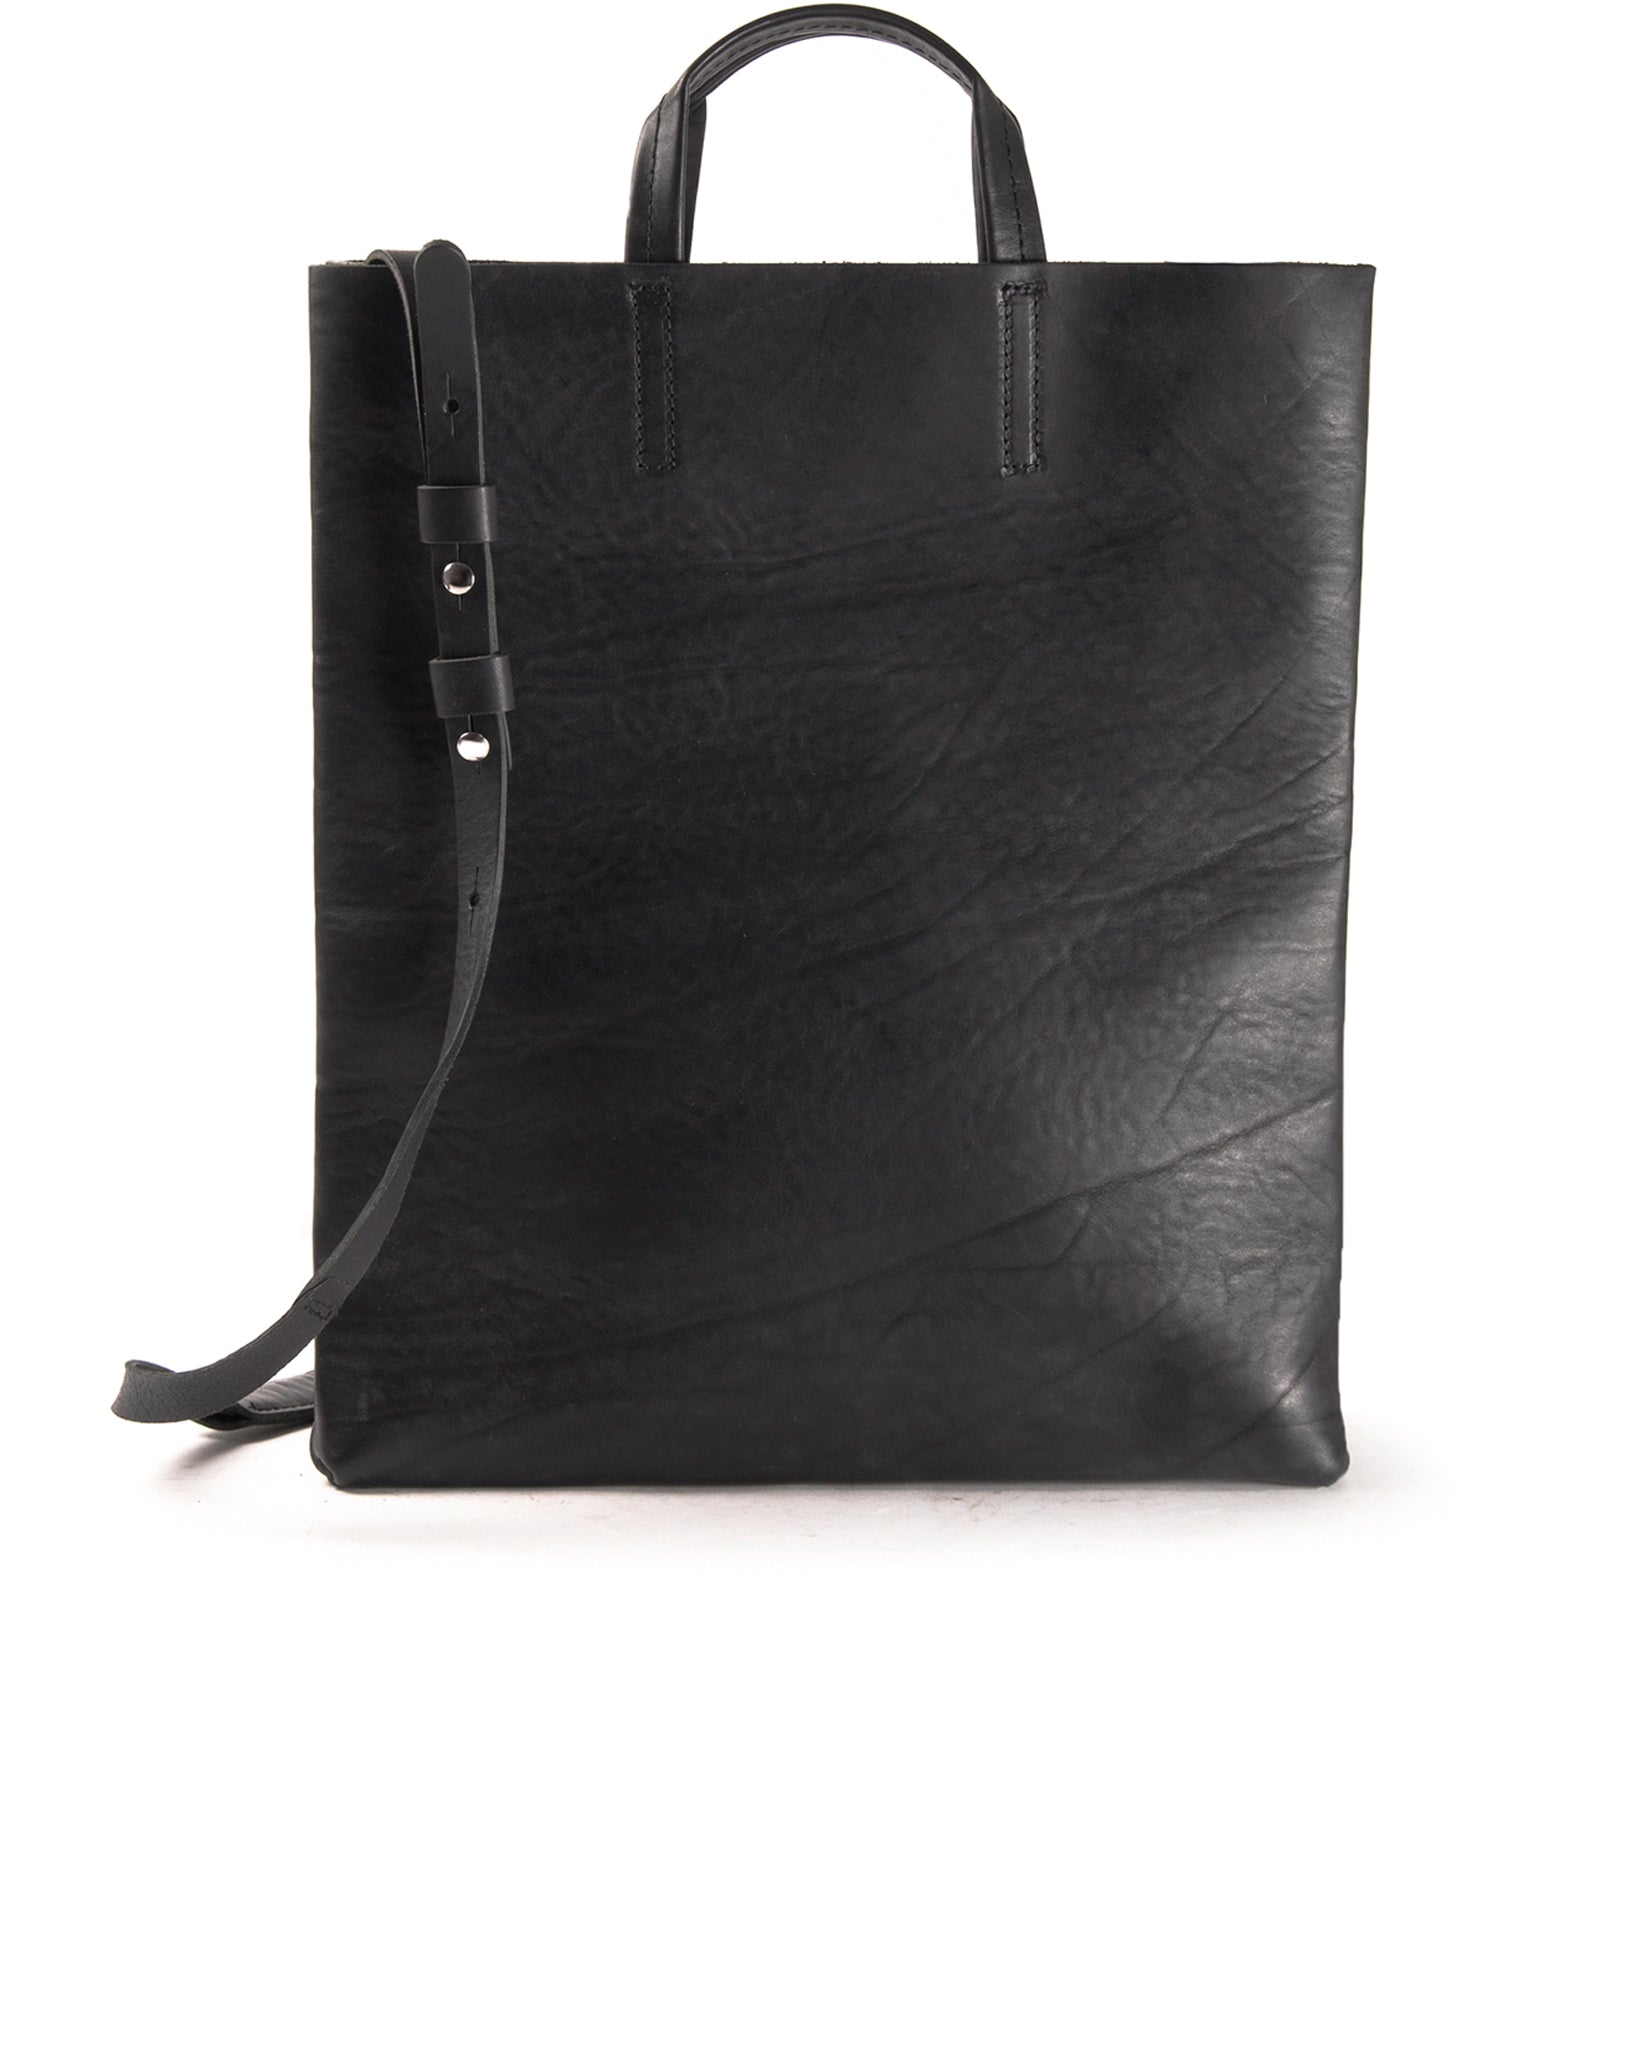 Kraud' Leather paperbag with belt